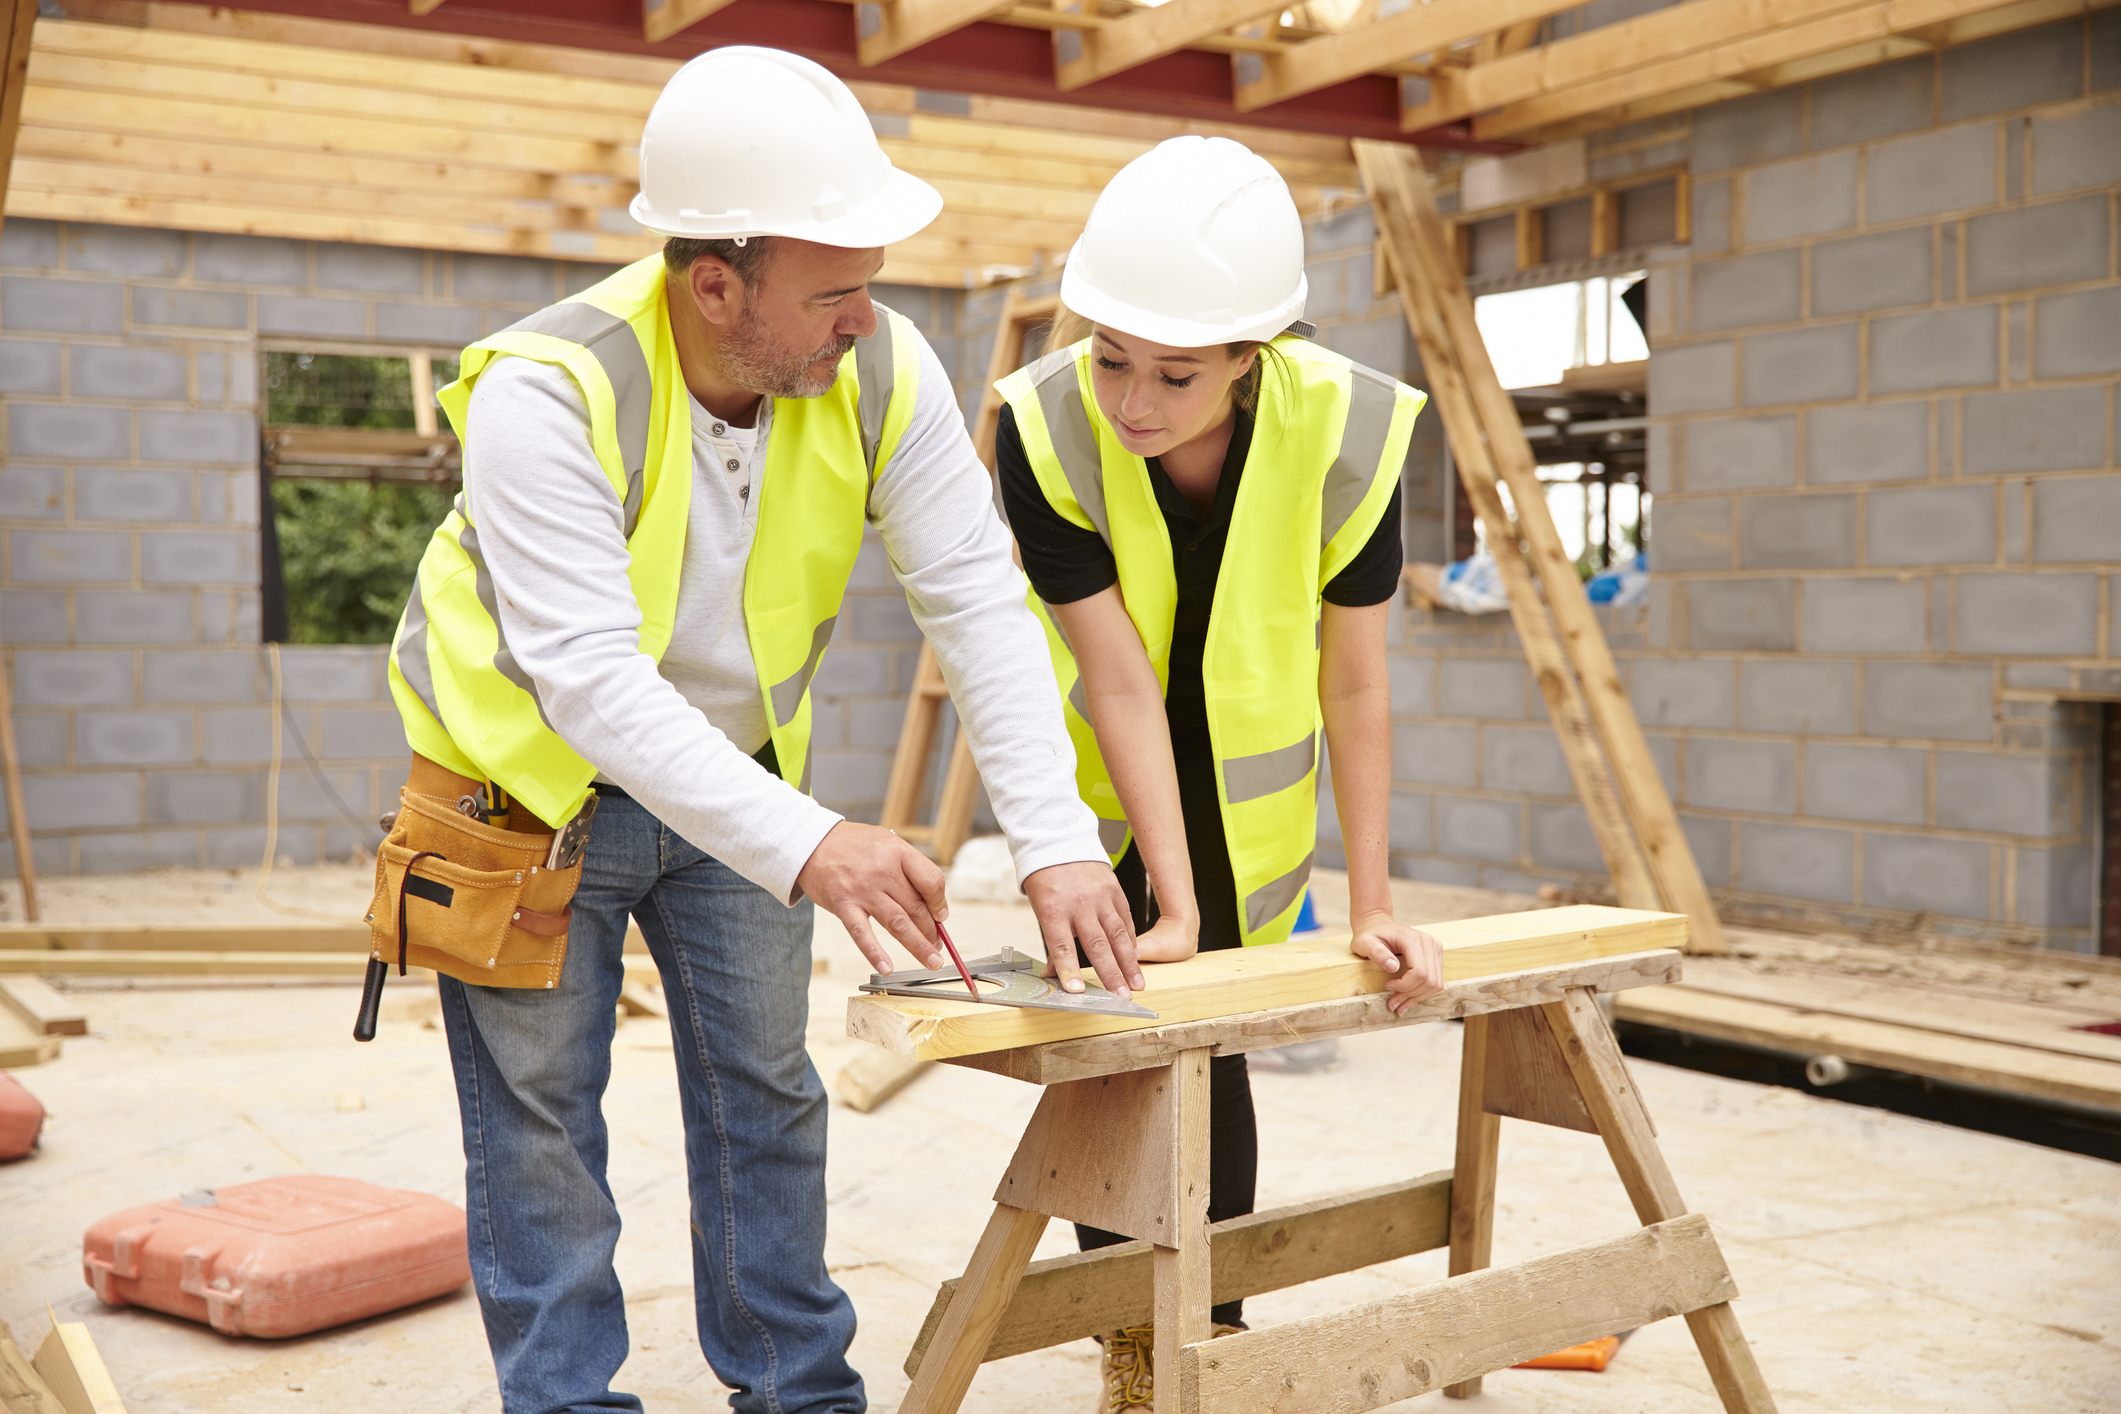 Joinery and construction business in the UK